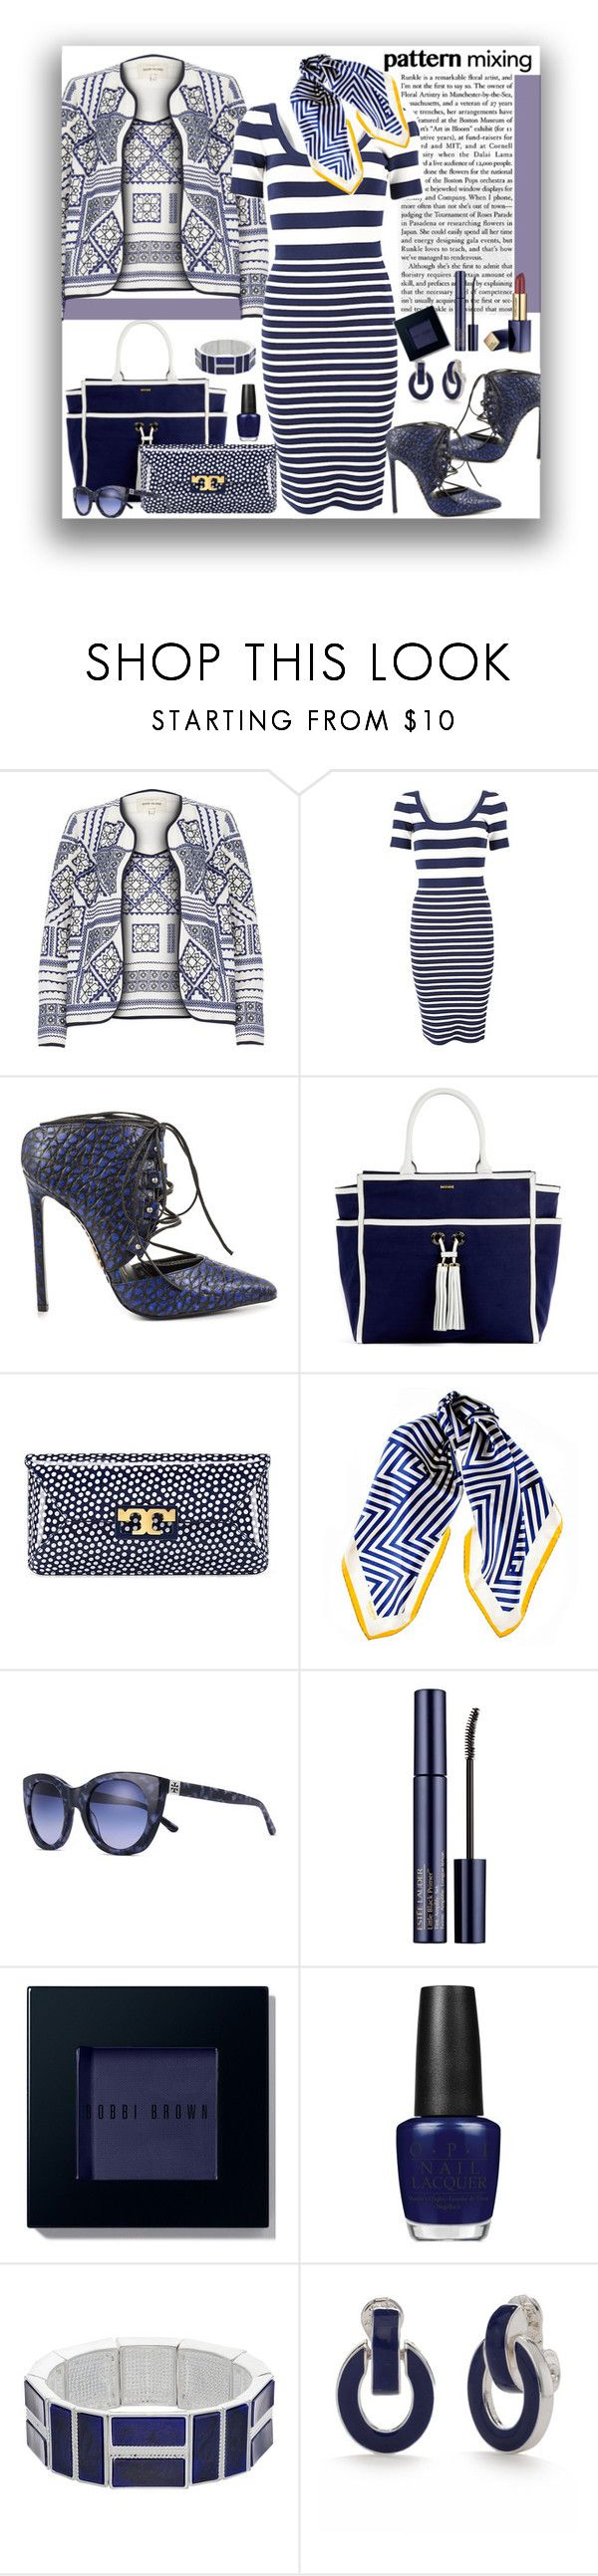 """""""Pattern Mixing"""" by marionmeyer ❤ liked on Polyvore featuring River Island, Michael Kors, Lust For Life, Melissa Odabash, Tory Burch, Black, Estée Lauder, Bobbi Brown Cosmetics, OPI and Chaps"""